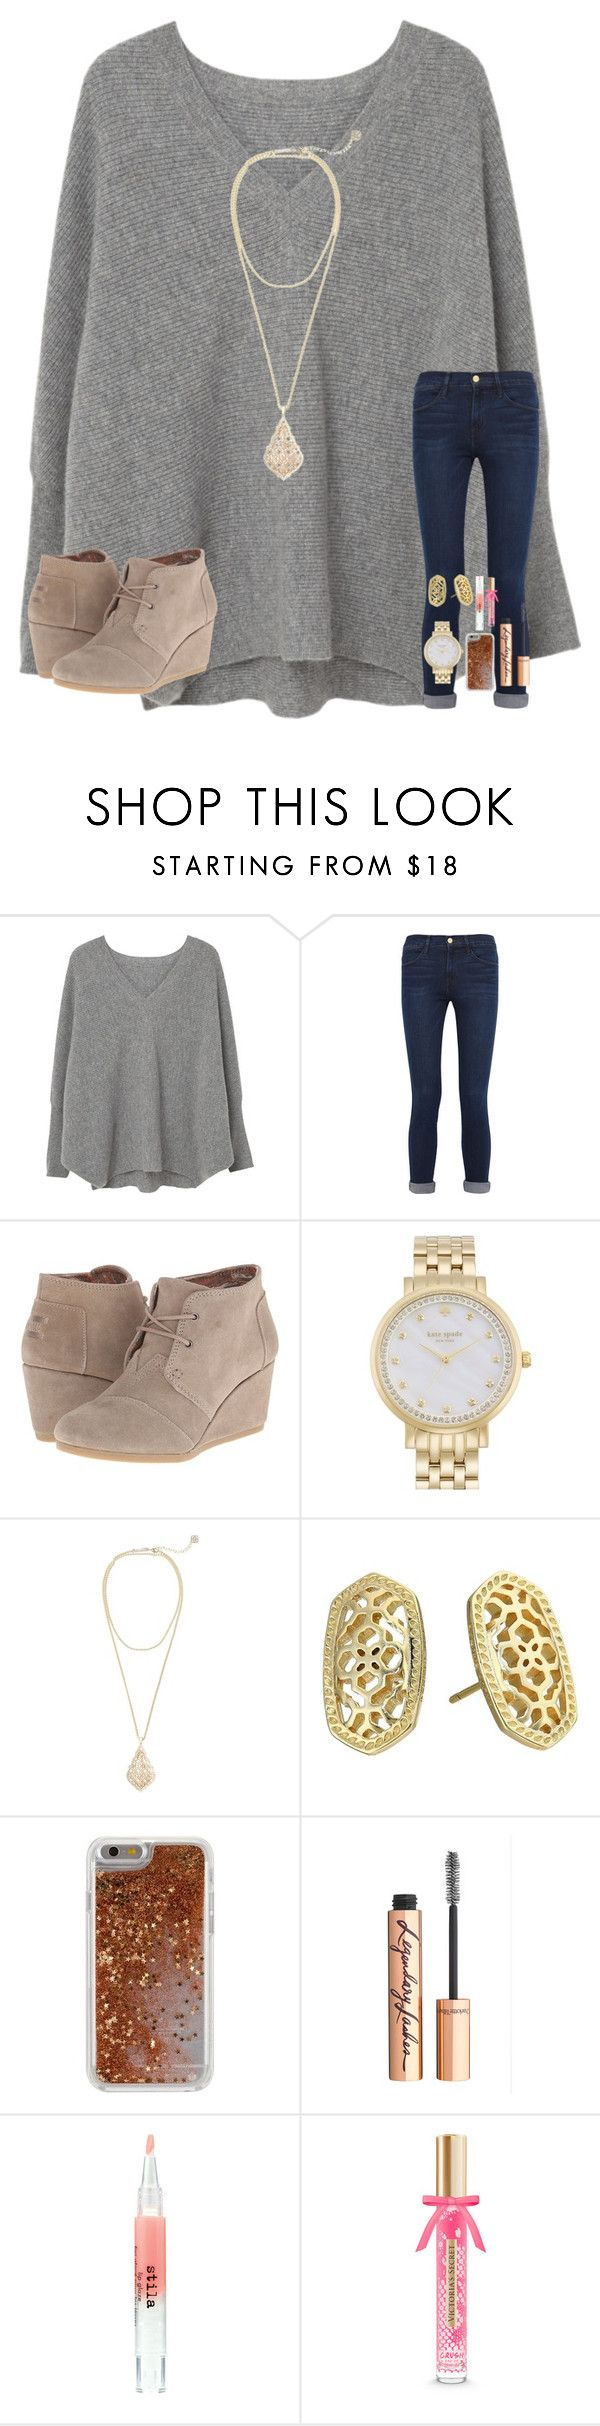 """"""" game tonight"""" by mae343 ❤ liked on Polyvore featuring MANGO, Frame, TOMS, Kate Spade, Kendra Scott, Agent 18, Charlotte Tilbury, Stila and Victoria's Secret"""